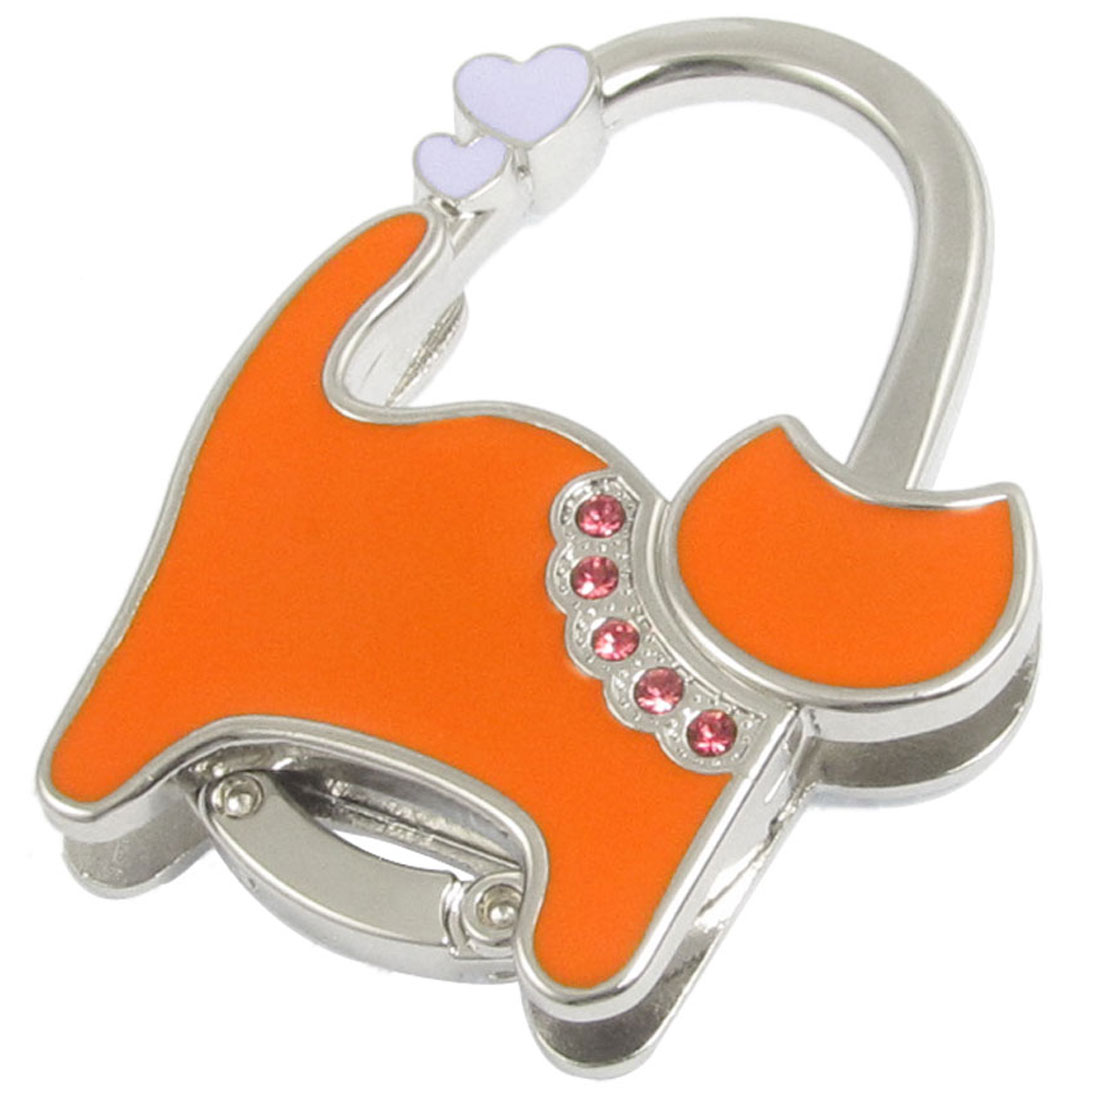 Orange Silver Tone Cute Cat Design Metal Folding Handbag Hook